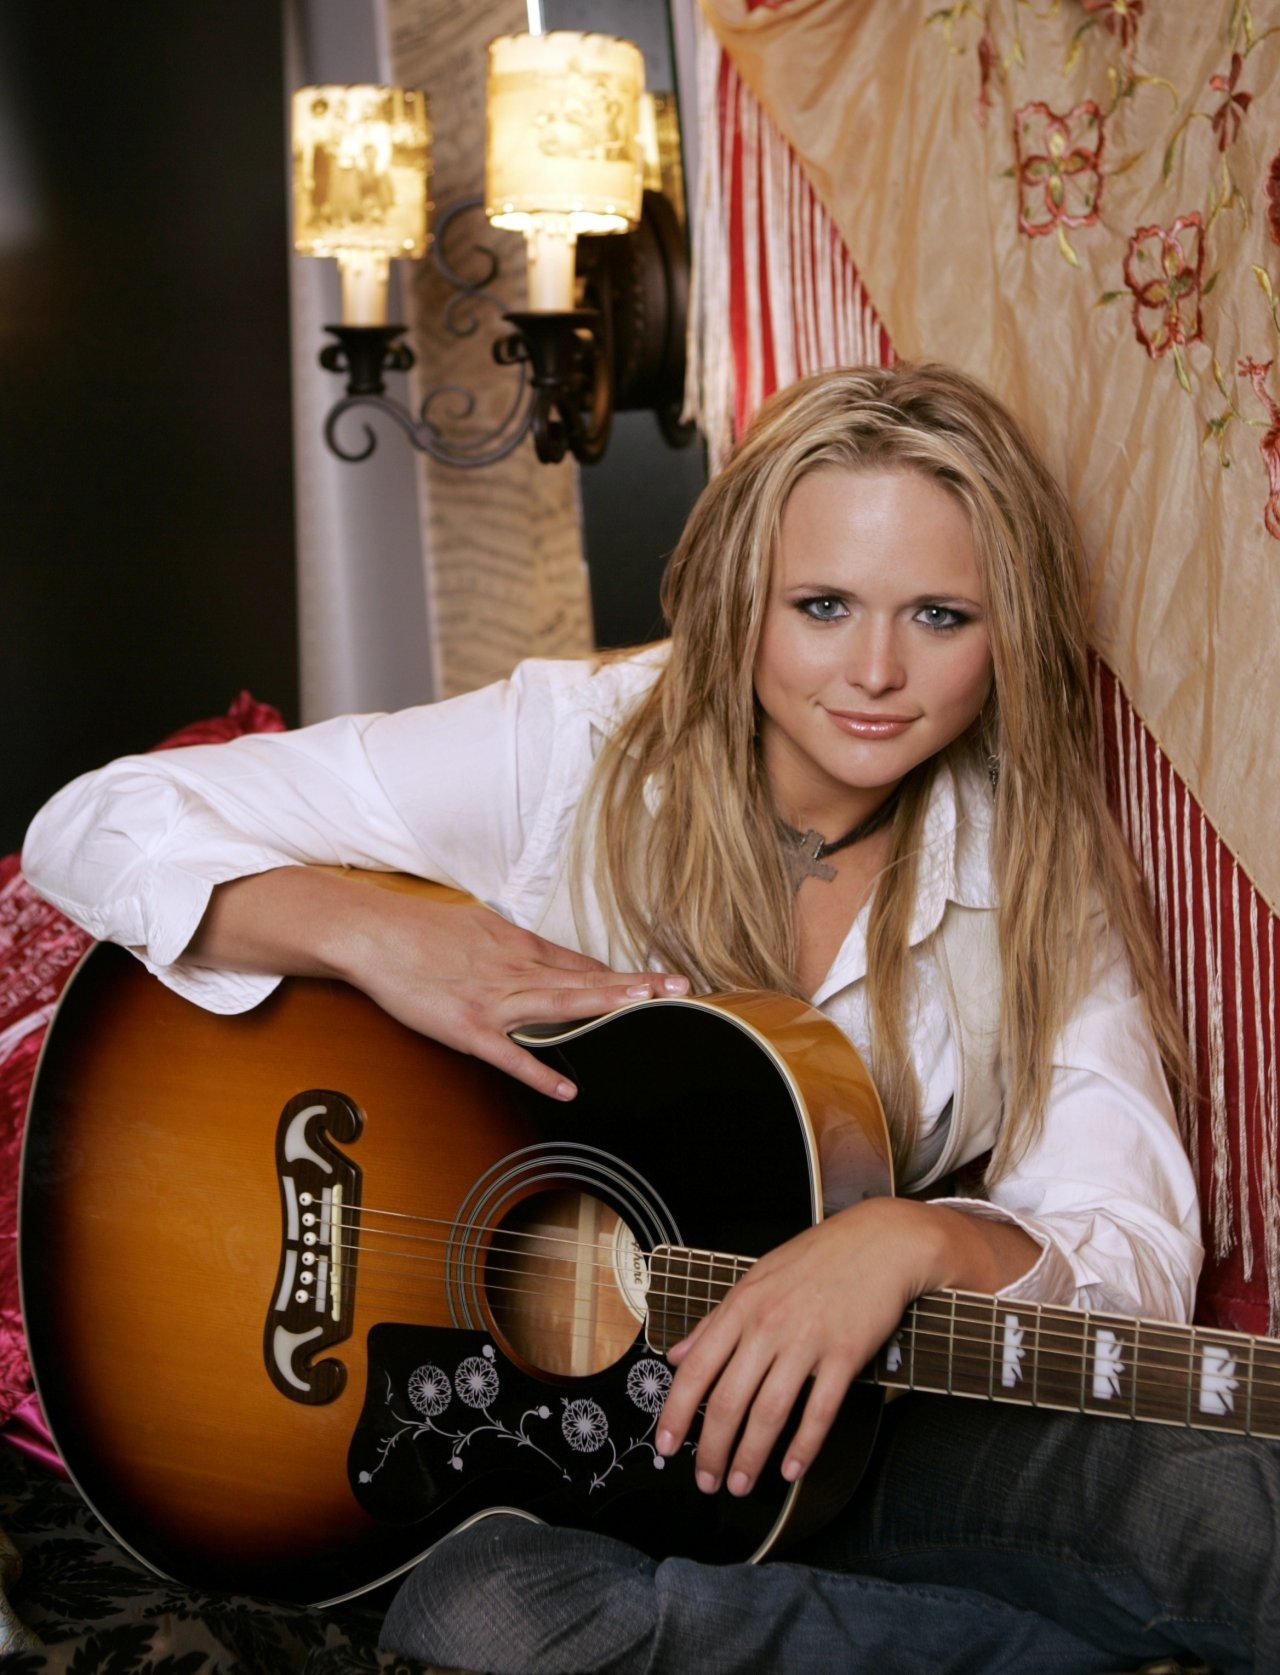 miranda lambert wallpapers high quality free